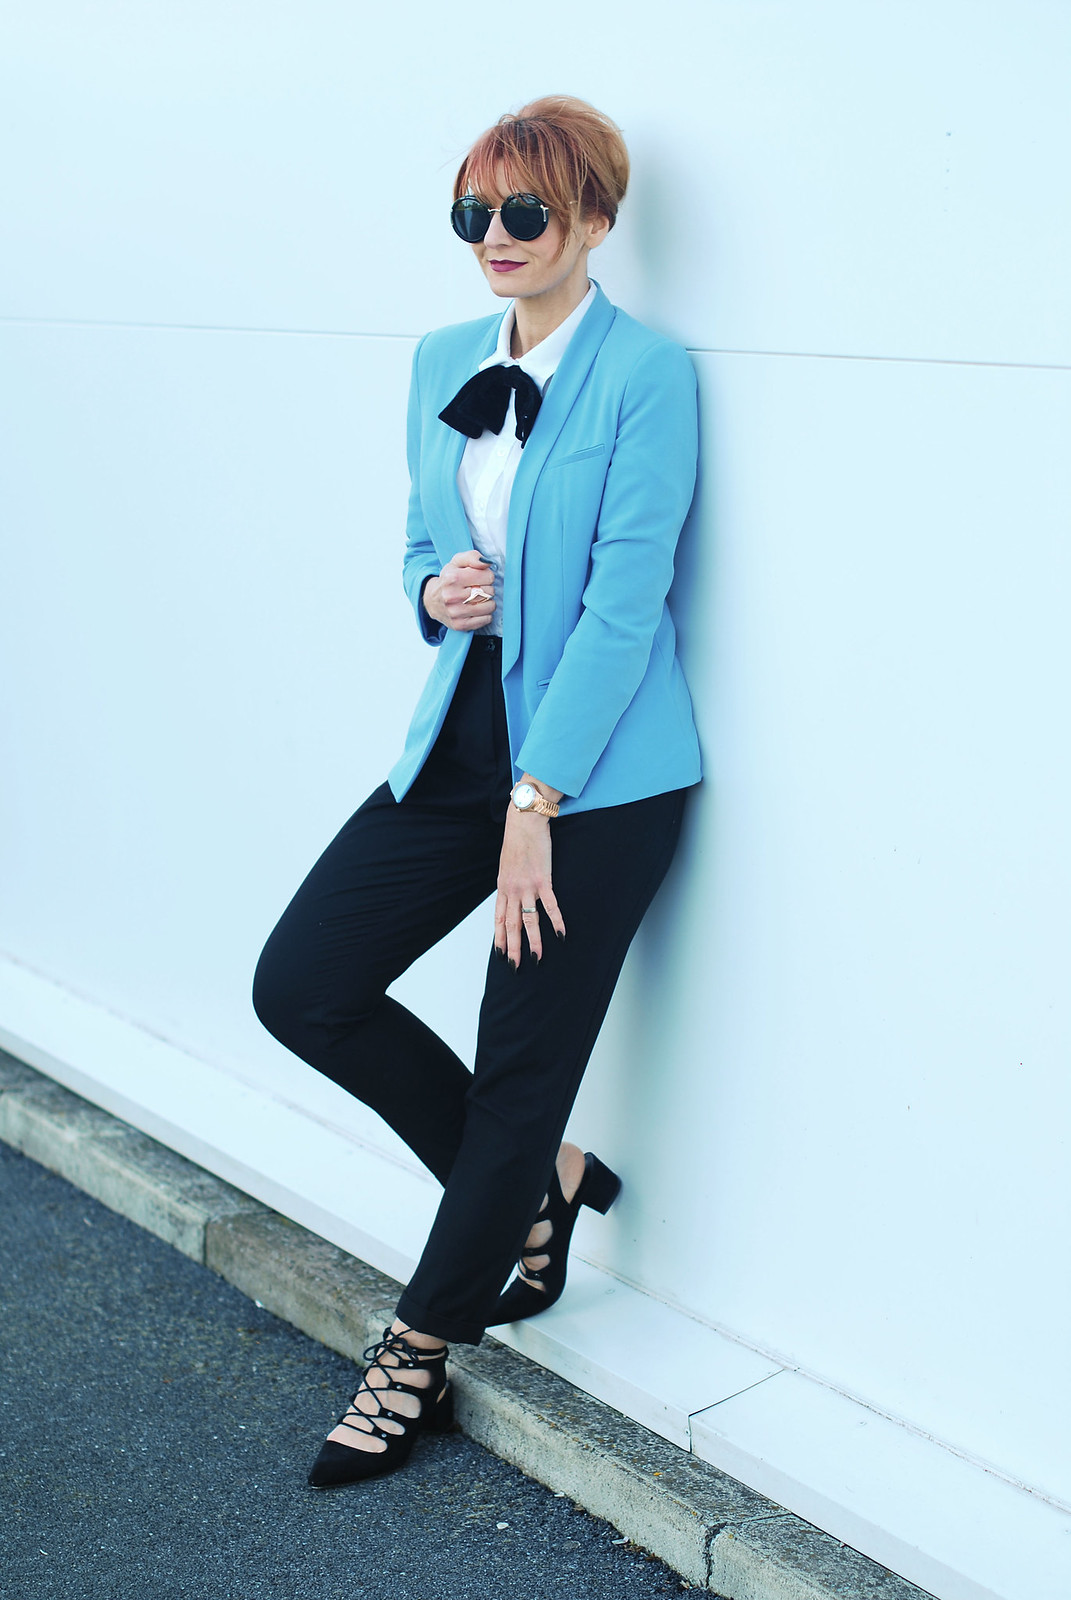 Maison EBEL collection rose gold diamond watch, sky blue blazer, black velvet bow tie, black ghillie lace-up shoes, oversized round sunglasses | Not Dressed As Lamb